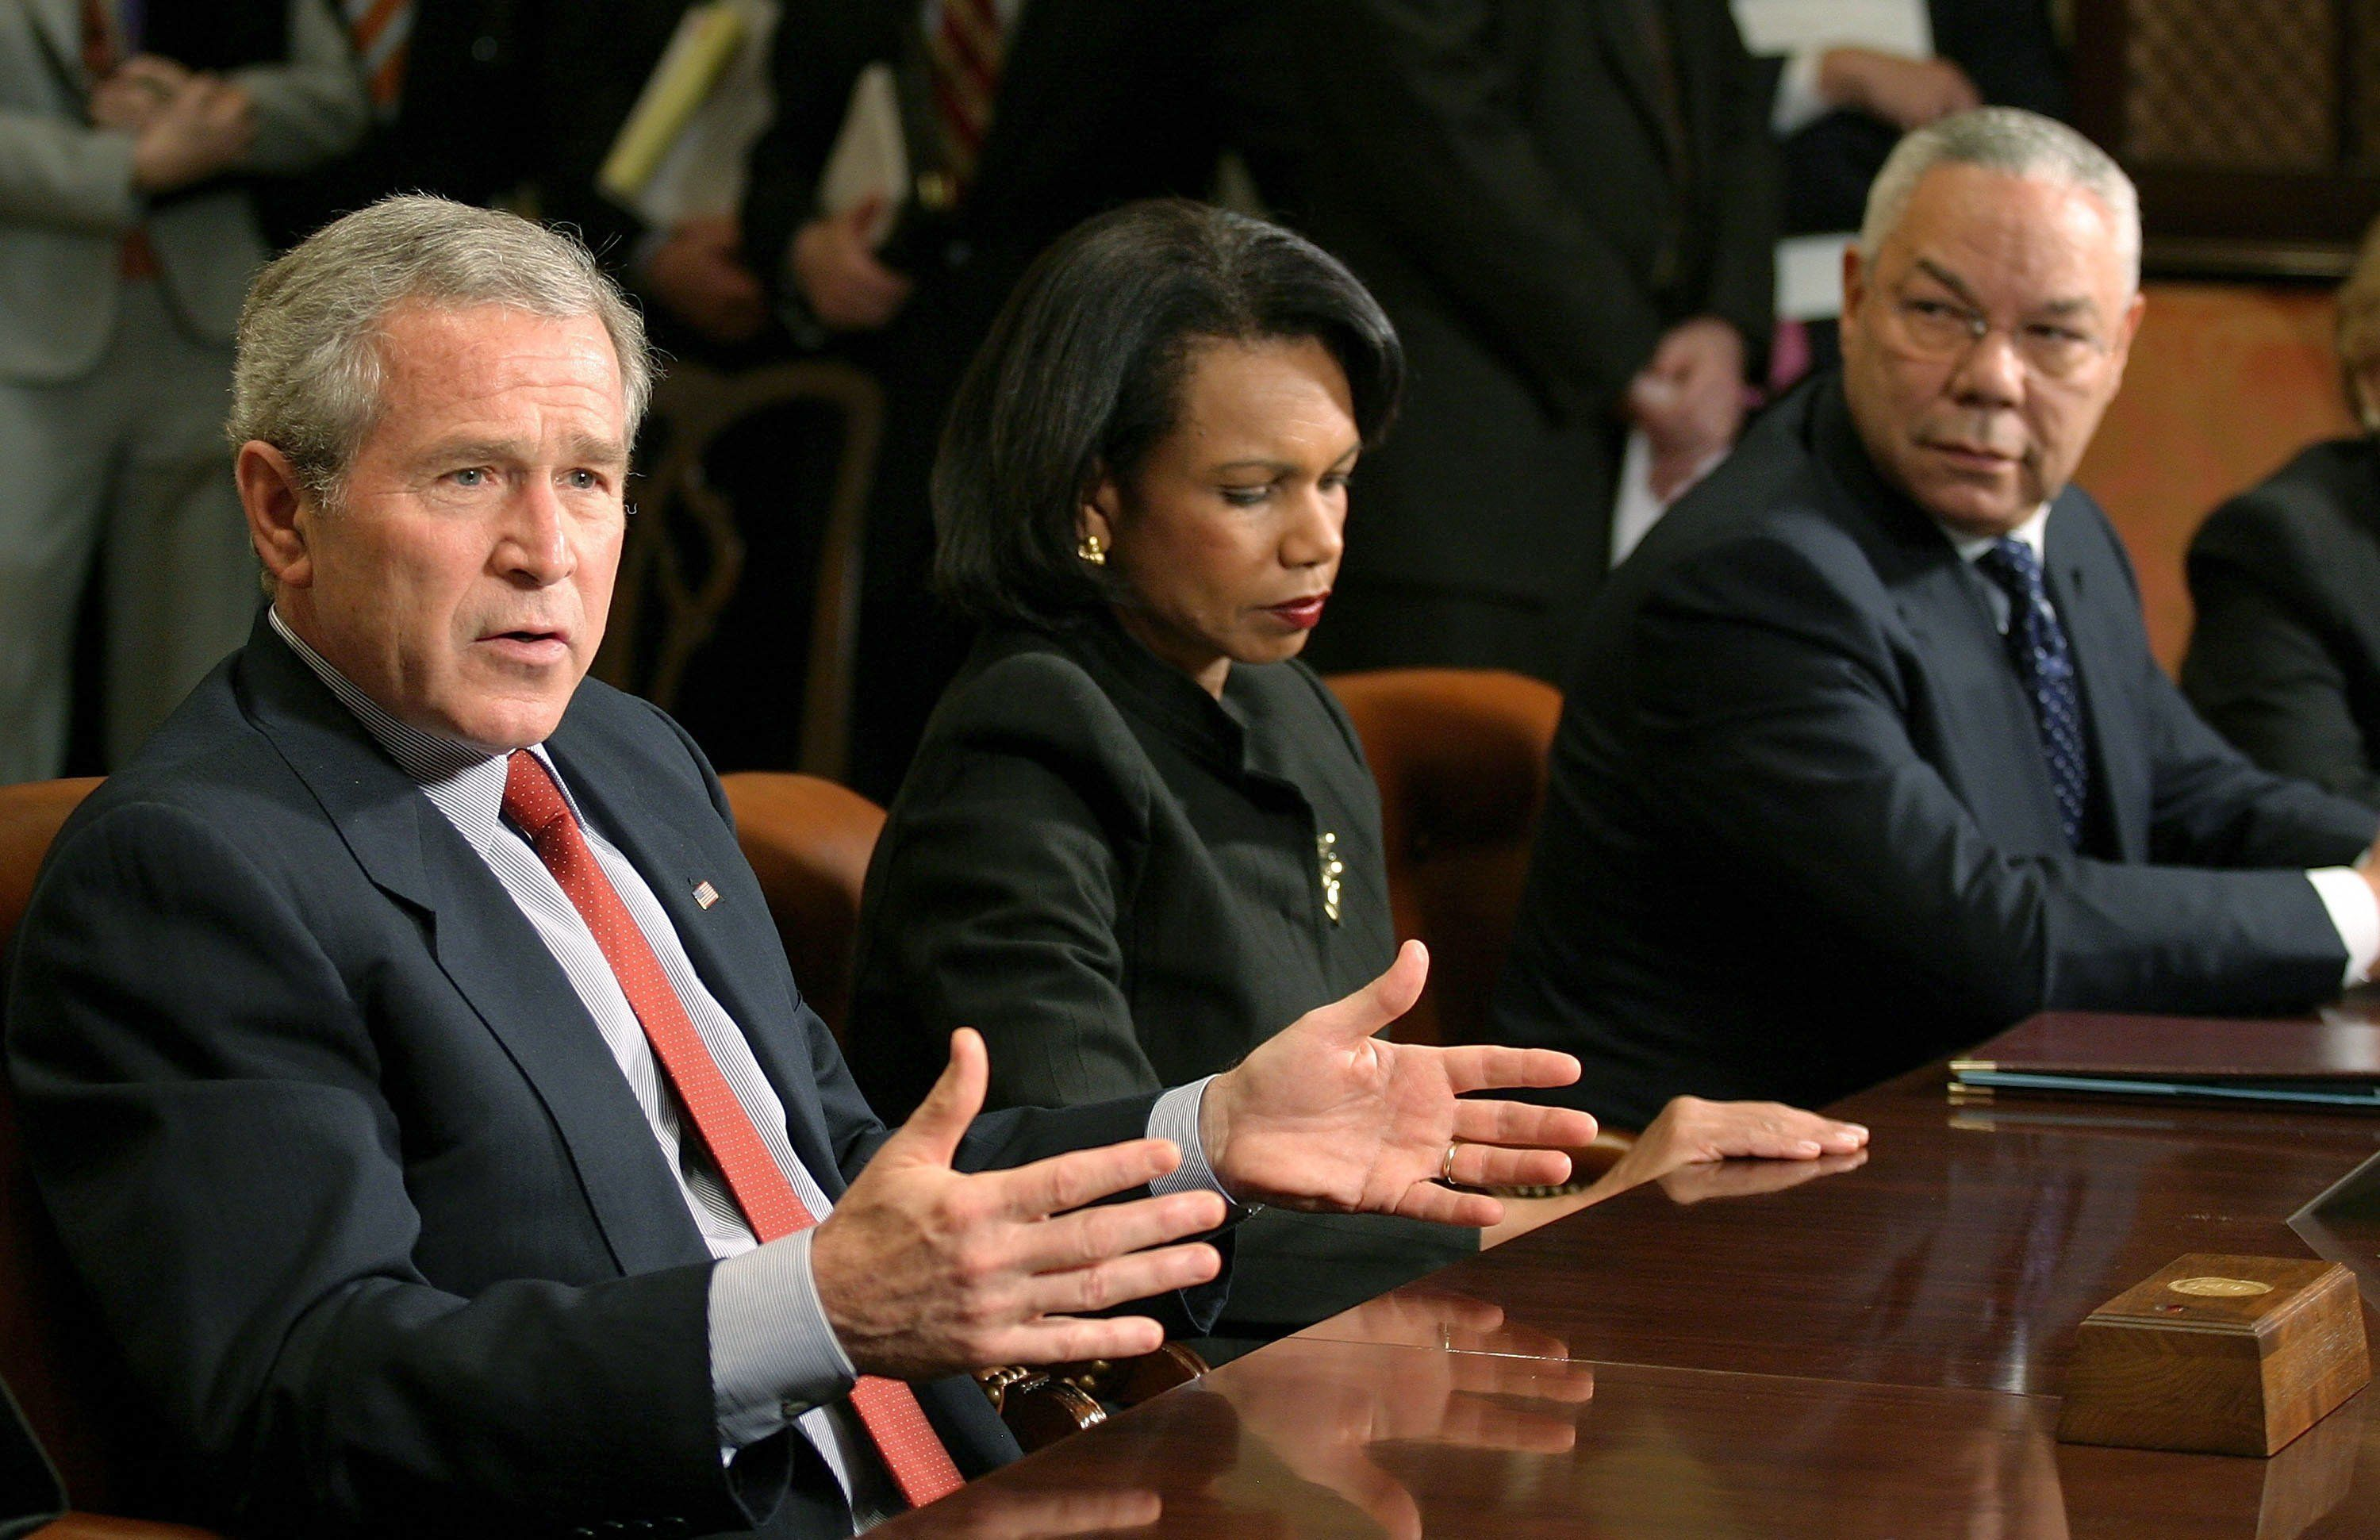 WASHINGTON - MAY 12:  (AFP OUT)  (L-R) President George W. Bush, Secretary of State Condoleezza Rice, and former Secretary of State Colin Powell meet with other former and current Secretaries of State and Defense in the Roosevelt Room of the White House May 12, 2006 in Washington, DC.  (Photo by Martin Simon-Pool/Getty Images)